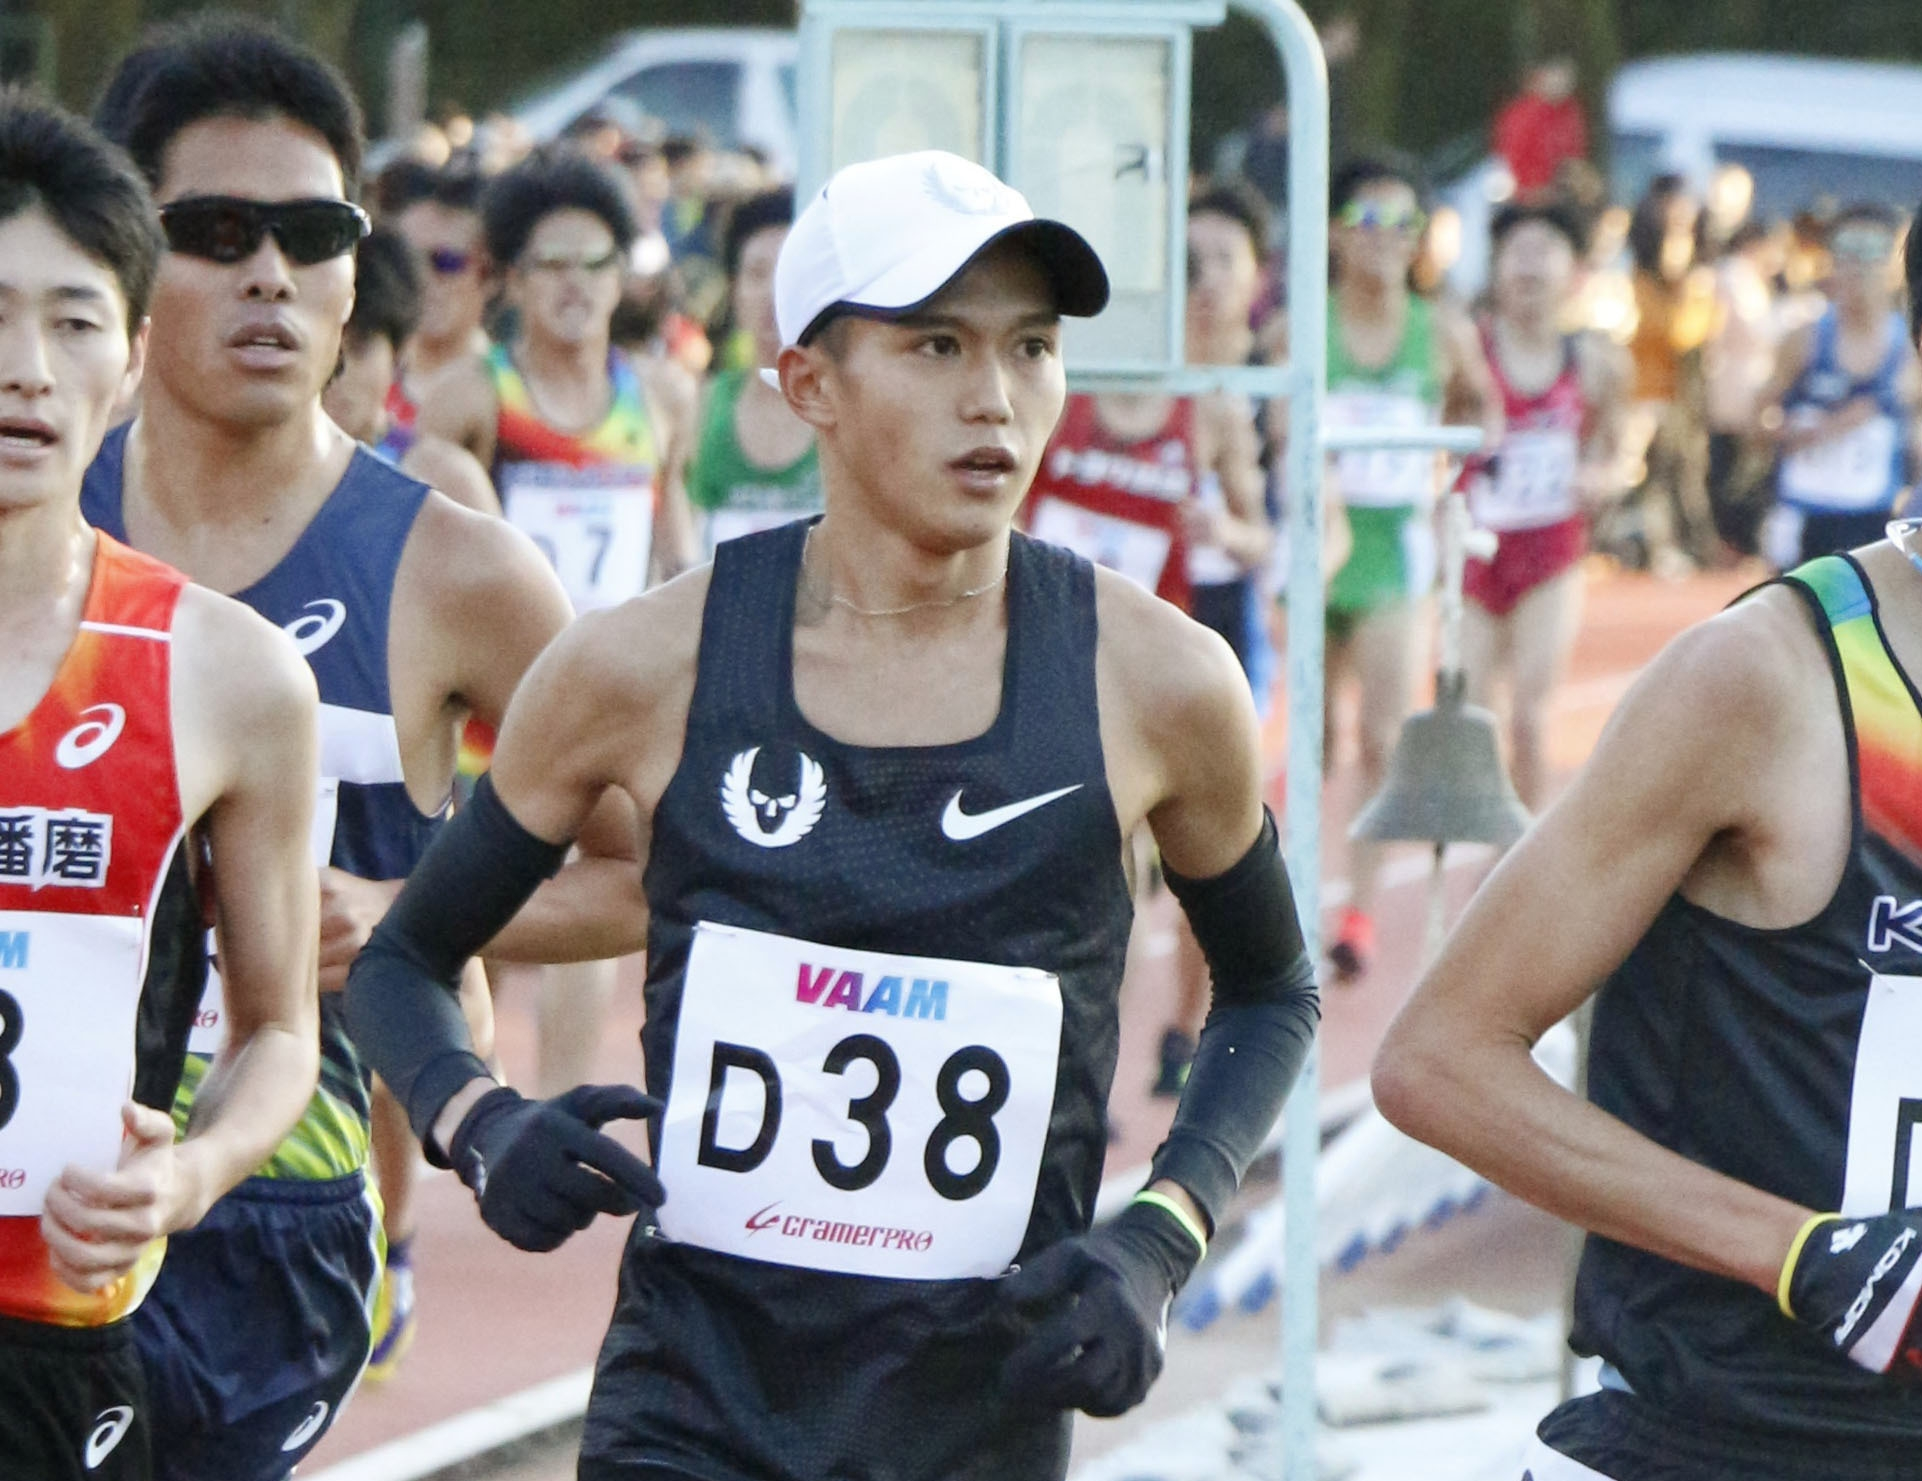 Suguru Osako '14, national record holder in marathon, named Athlete of the Year by JAAF